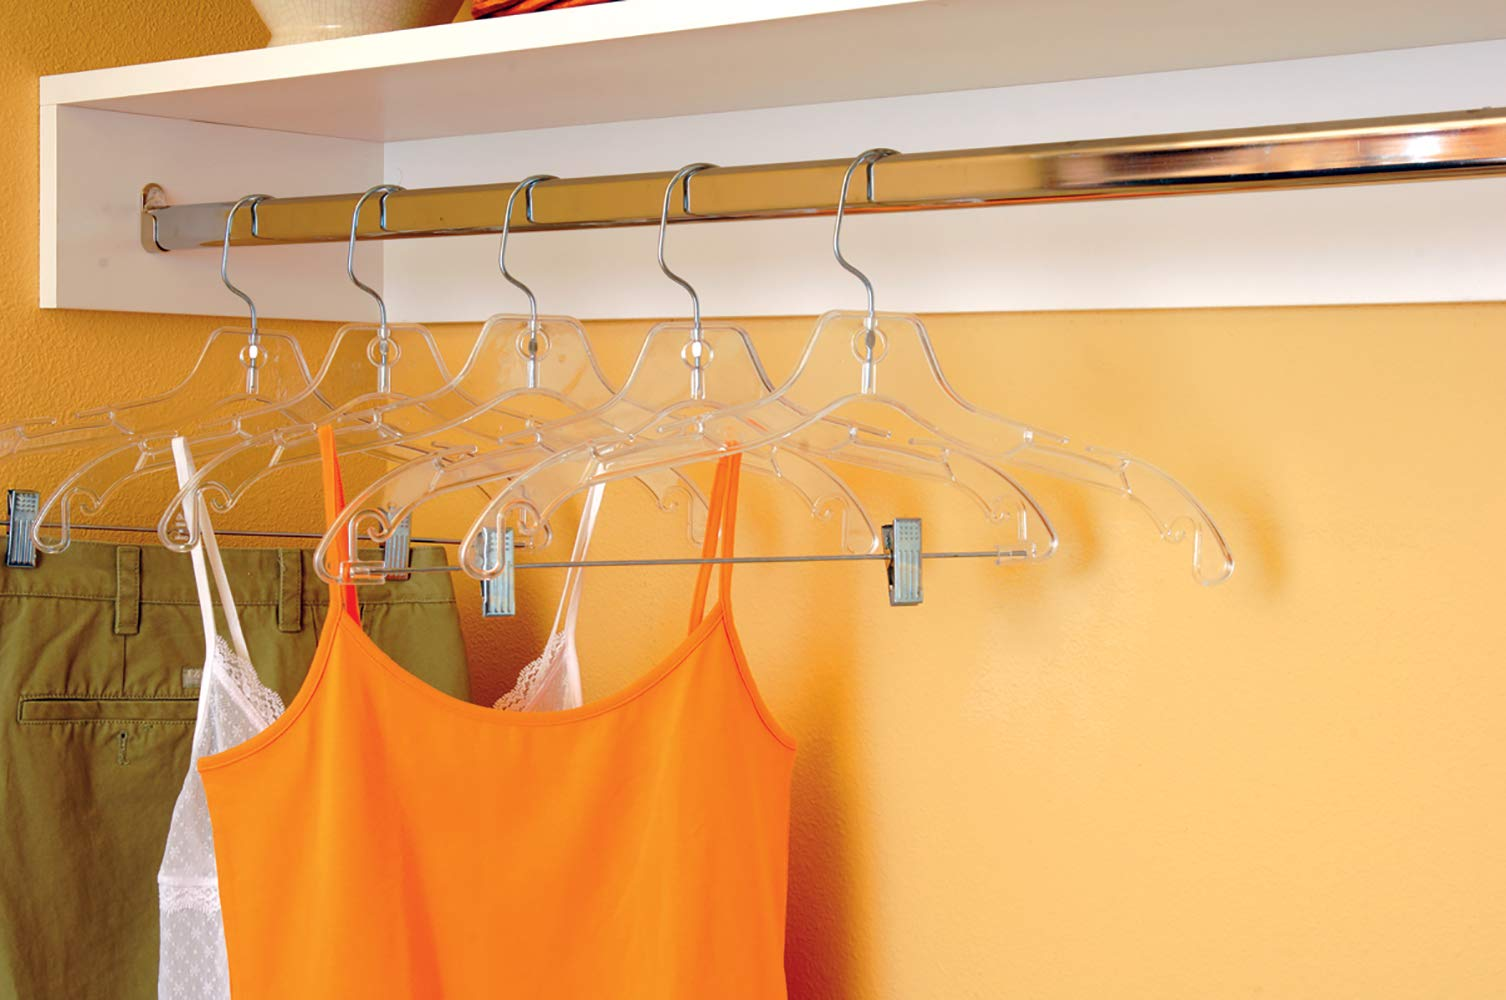 Sturdy Clear Plastic Top Hanger,  Box of 100 Durable Space Saving Hangers w/ 360 degree Chrome Swivel Hook and Notches for Shirt or Dress by The Great American Hanger Company by The Great American Hanger Company (Image #4)